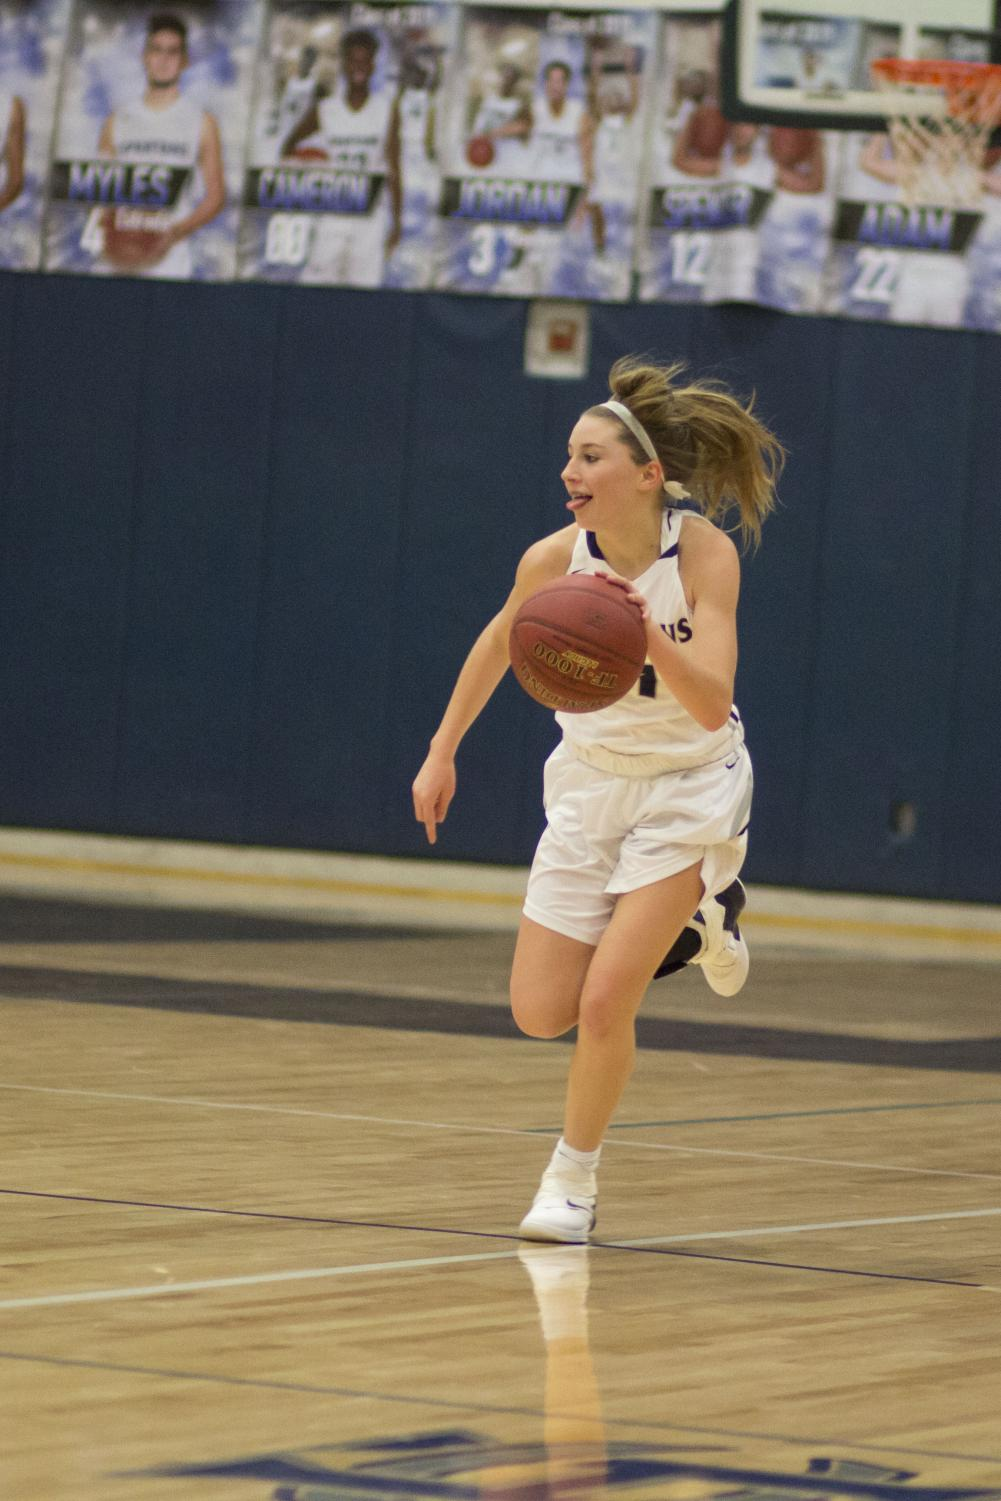 Gracie Stugart drives down the court, tongue sticking out, displaying her passion and love for the game. her enthusiasm is clear as she looks for one of her teammates to pass the ball to.